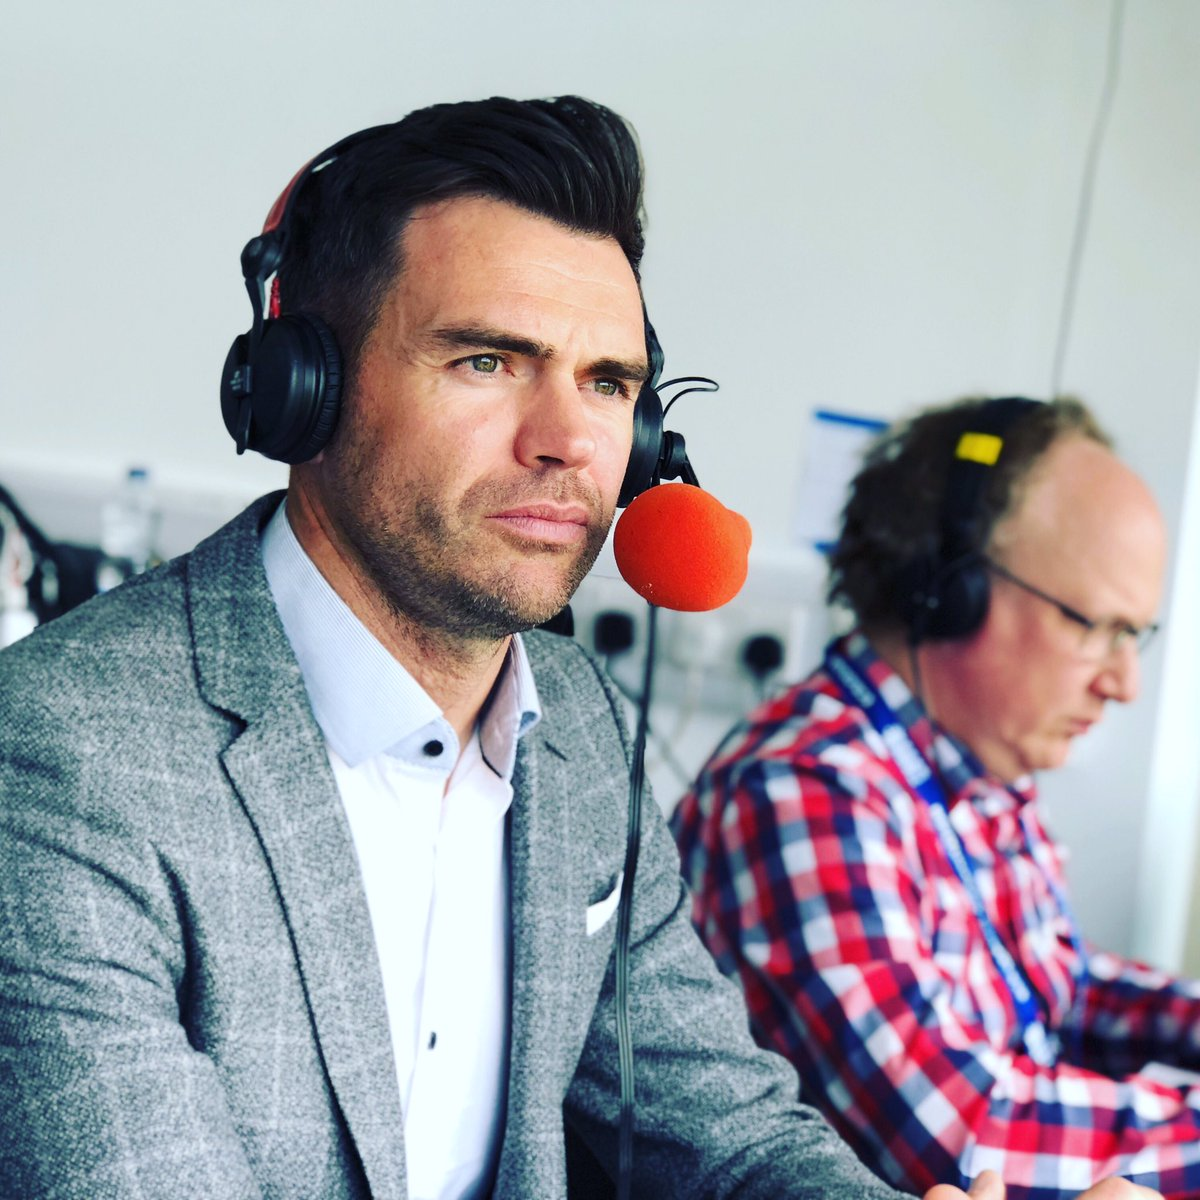 The @bbctms team for the 2nd ODI today.   @isaguha  @Cricket_Mann  @CharlesDagnall  @norcrosscricket  @MichaelVaughan  @philtufnell  @iramizraja  & @jimmy9   On air 1045am.   #bbccricket #ENGvPAK